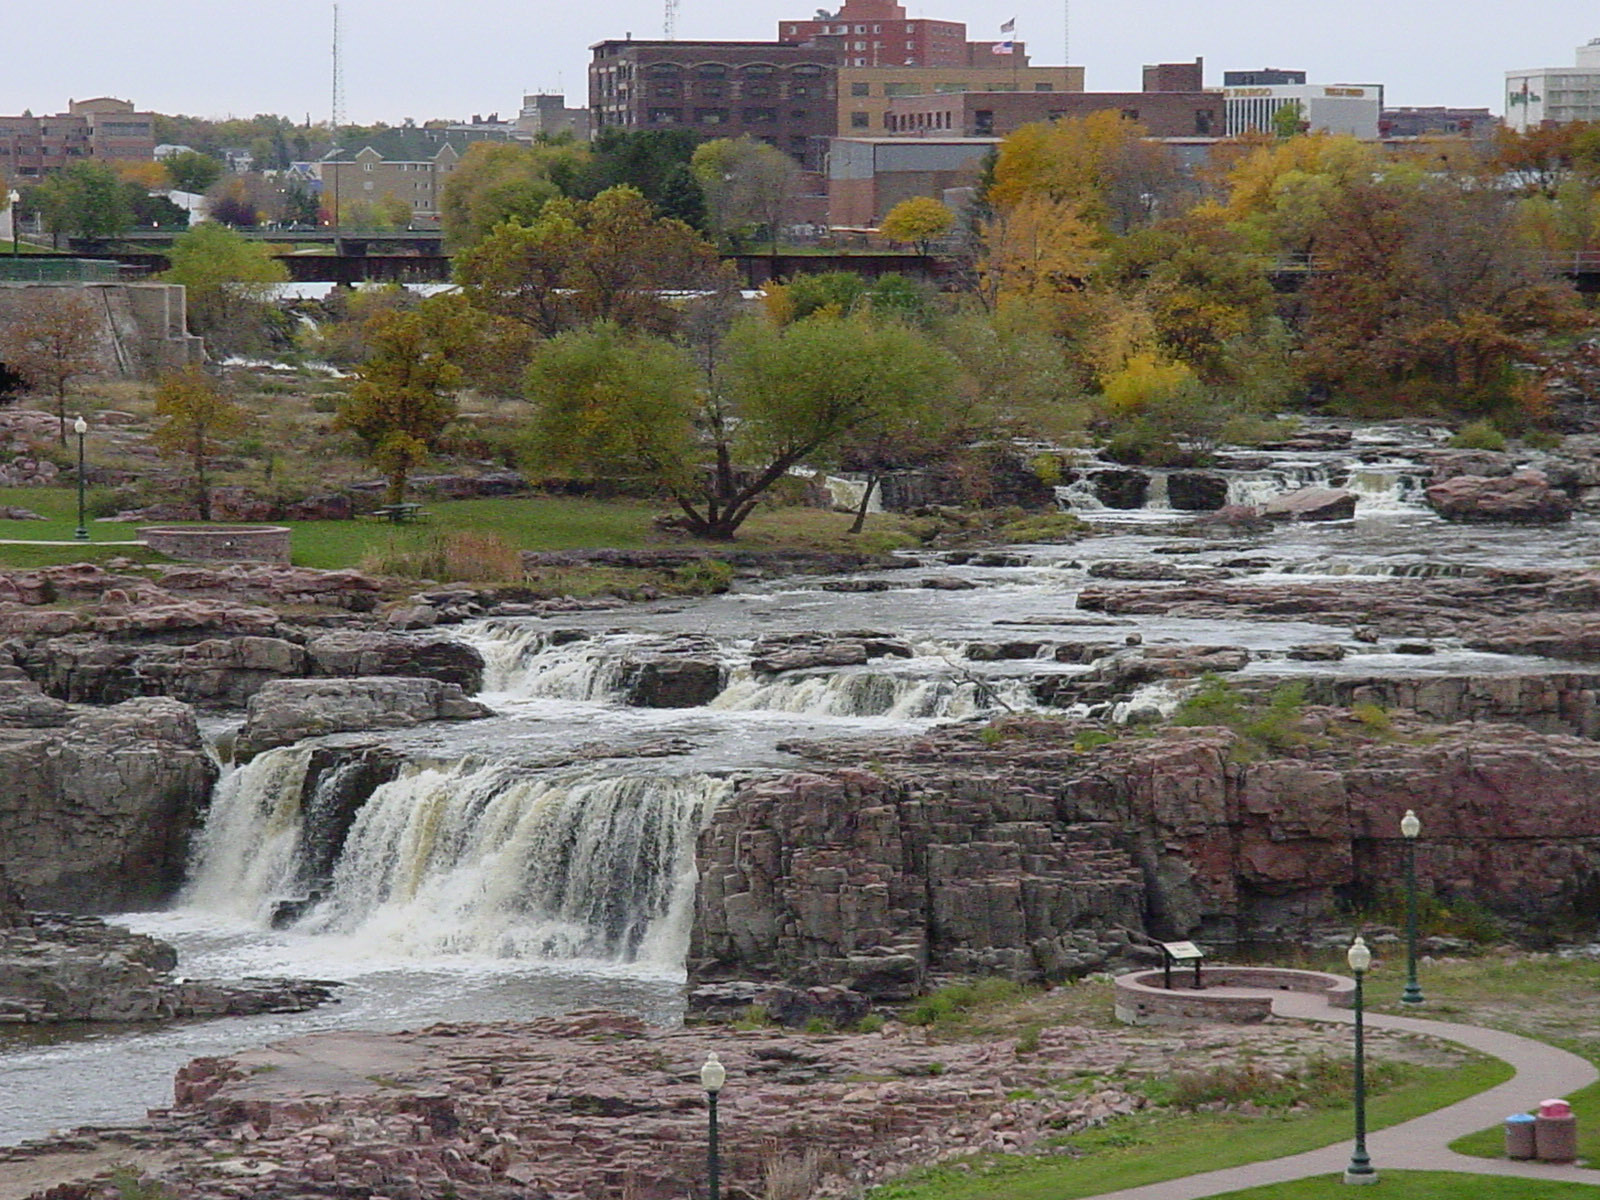 City Of Sioux Falls City Of Sioux Falls